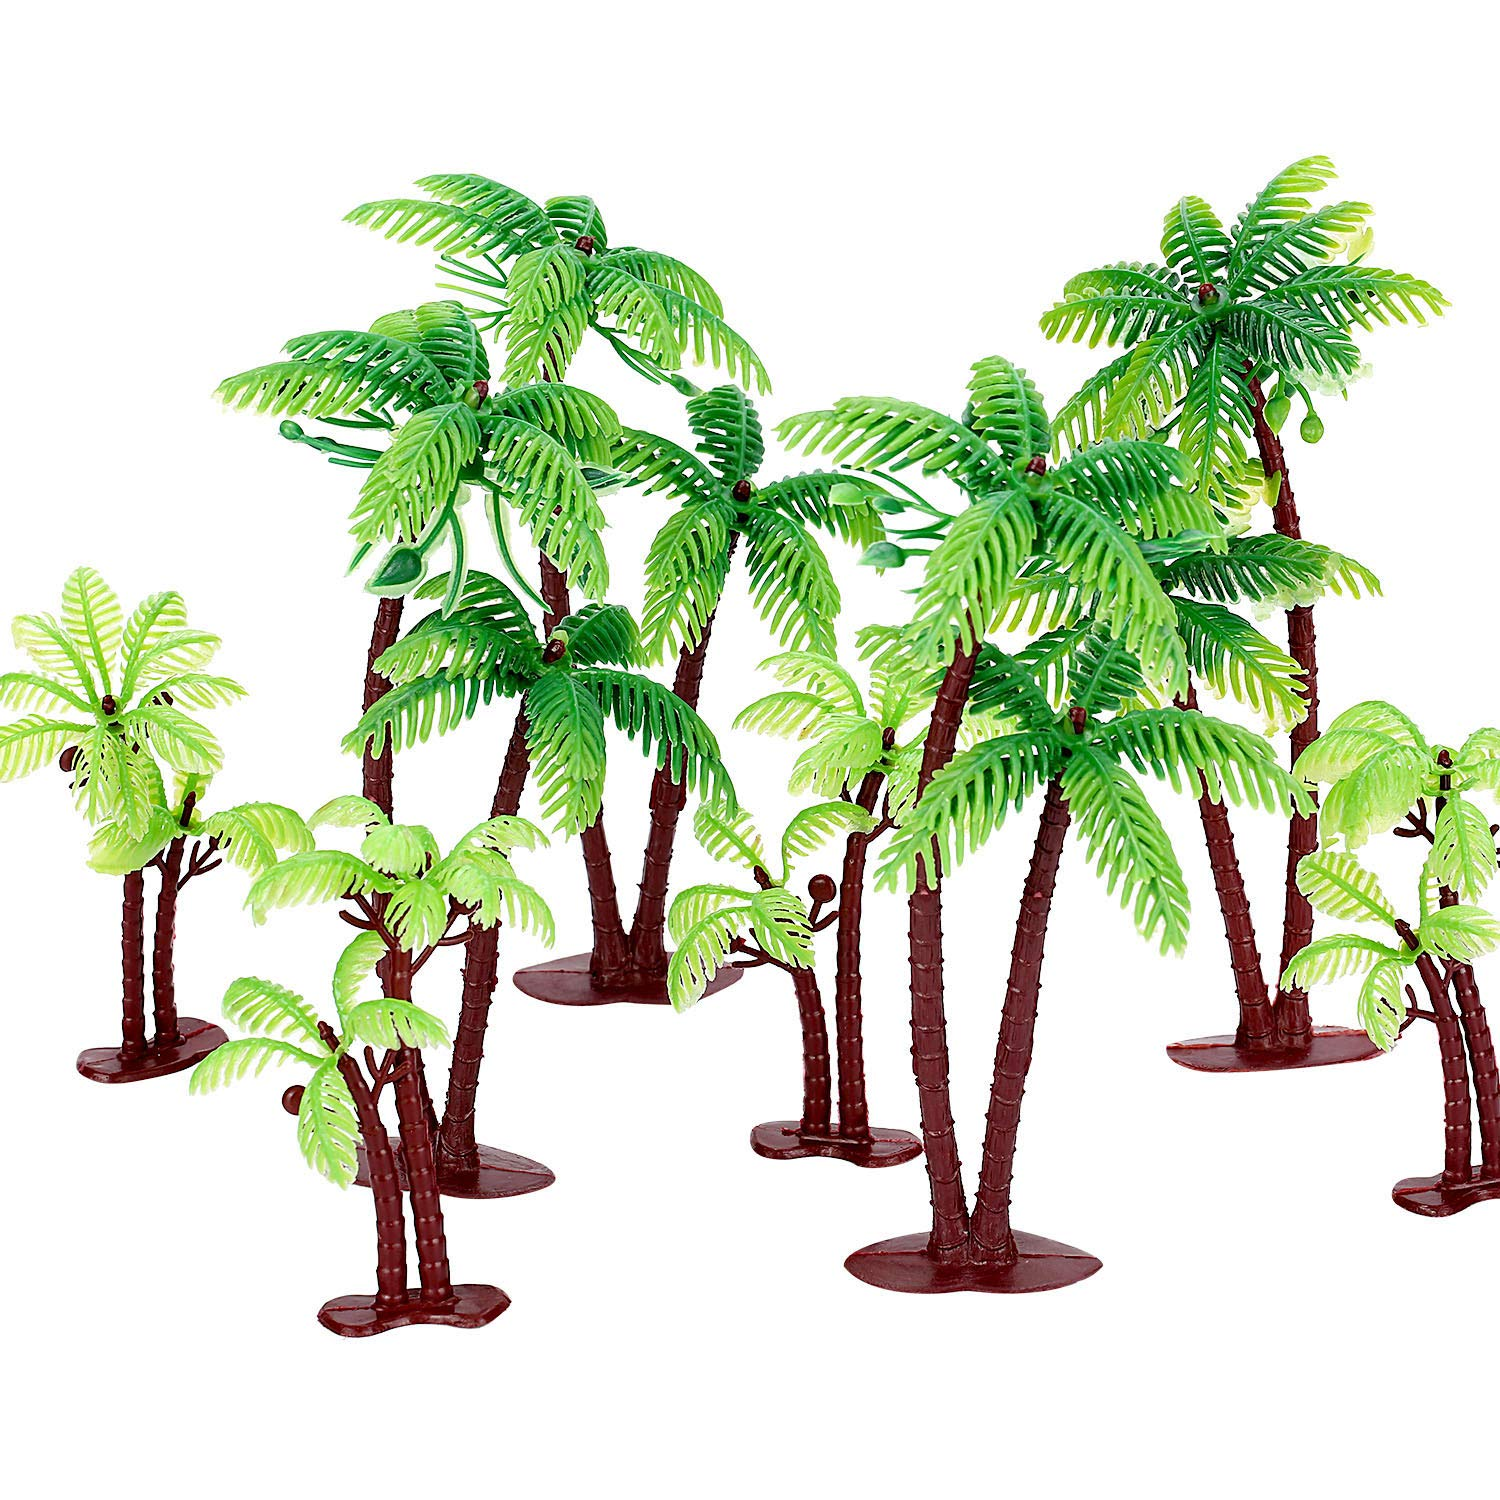 Jovitec 16 Pieces Green Palm Tree Cupcake Topper with Coconuts Cake Topper for Cake Decorations, 5.5 Inch and 3.15 Inch